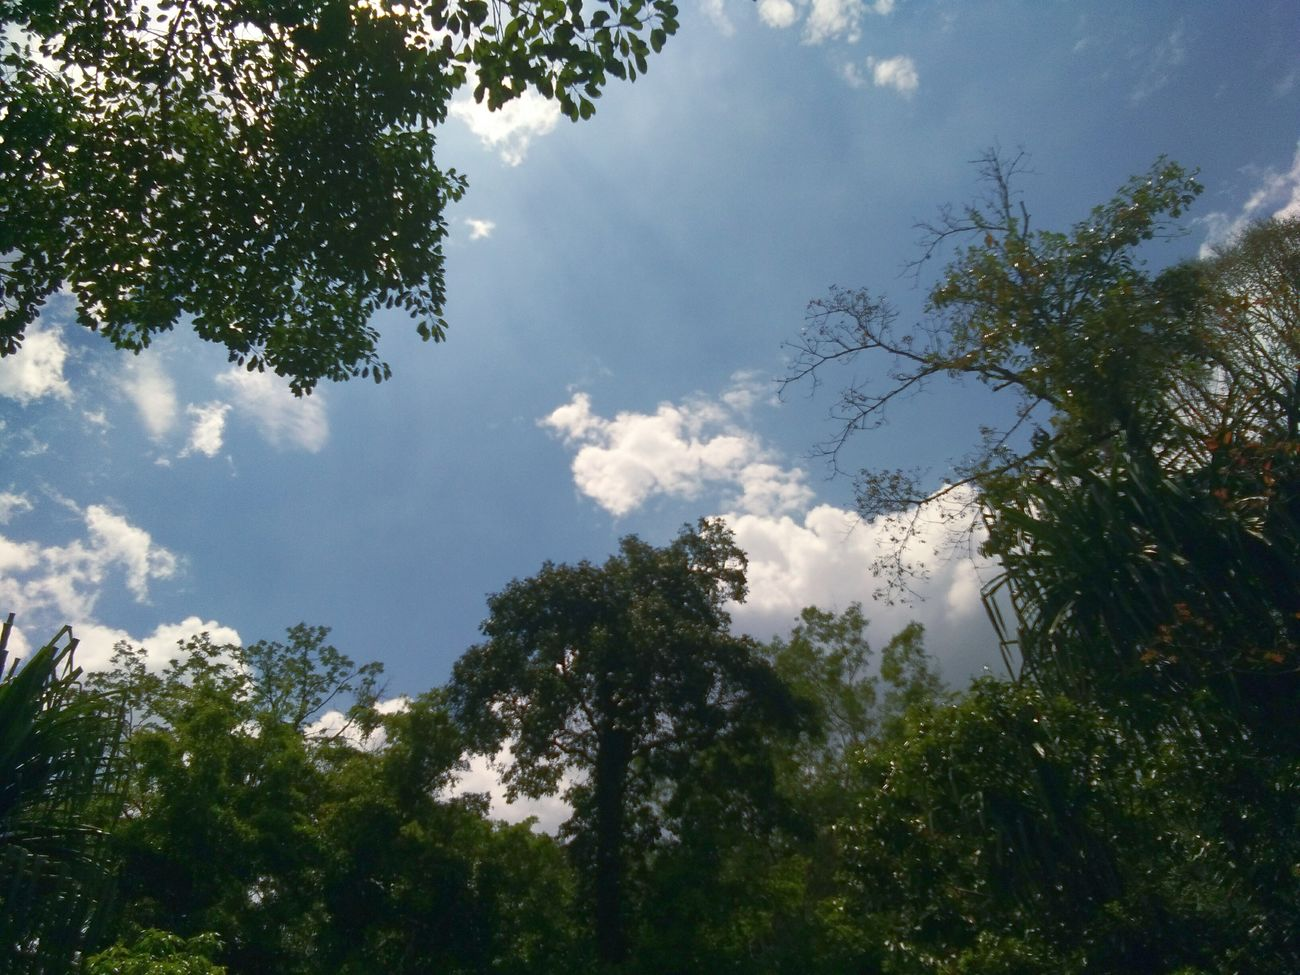 Tree Nature No People Sky Day Outdoors Enjoying Life Tree Nature Beautiful Nature_collection Clouds And Sky Taking Pictures Forest Relaxing